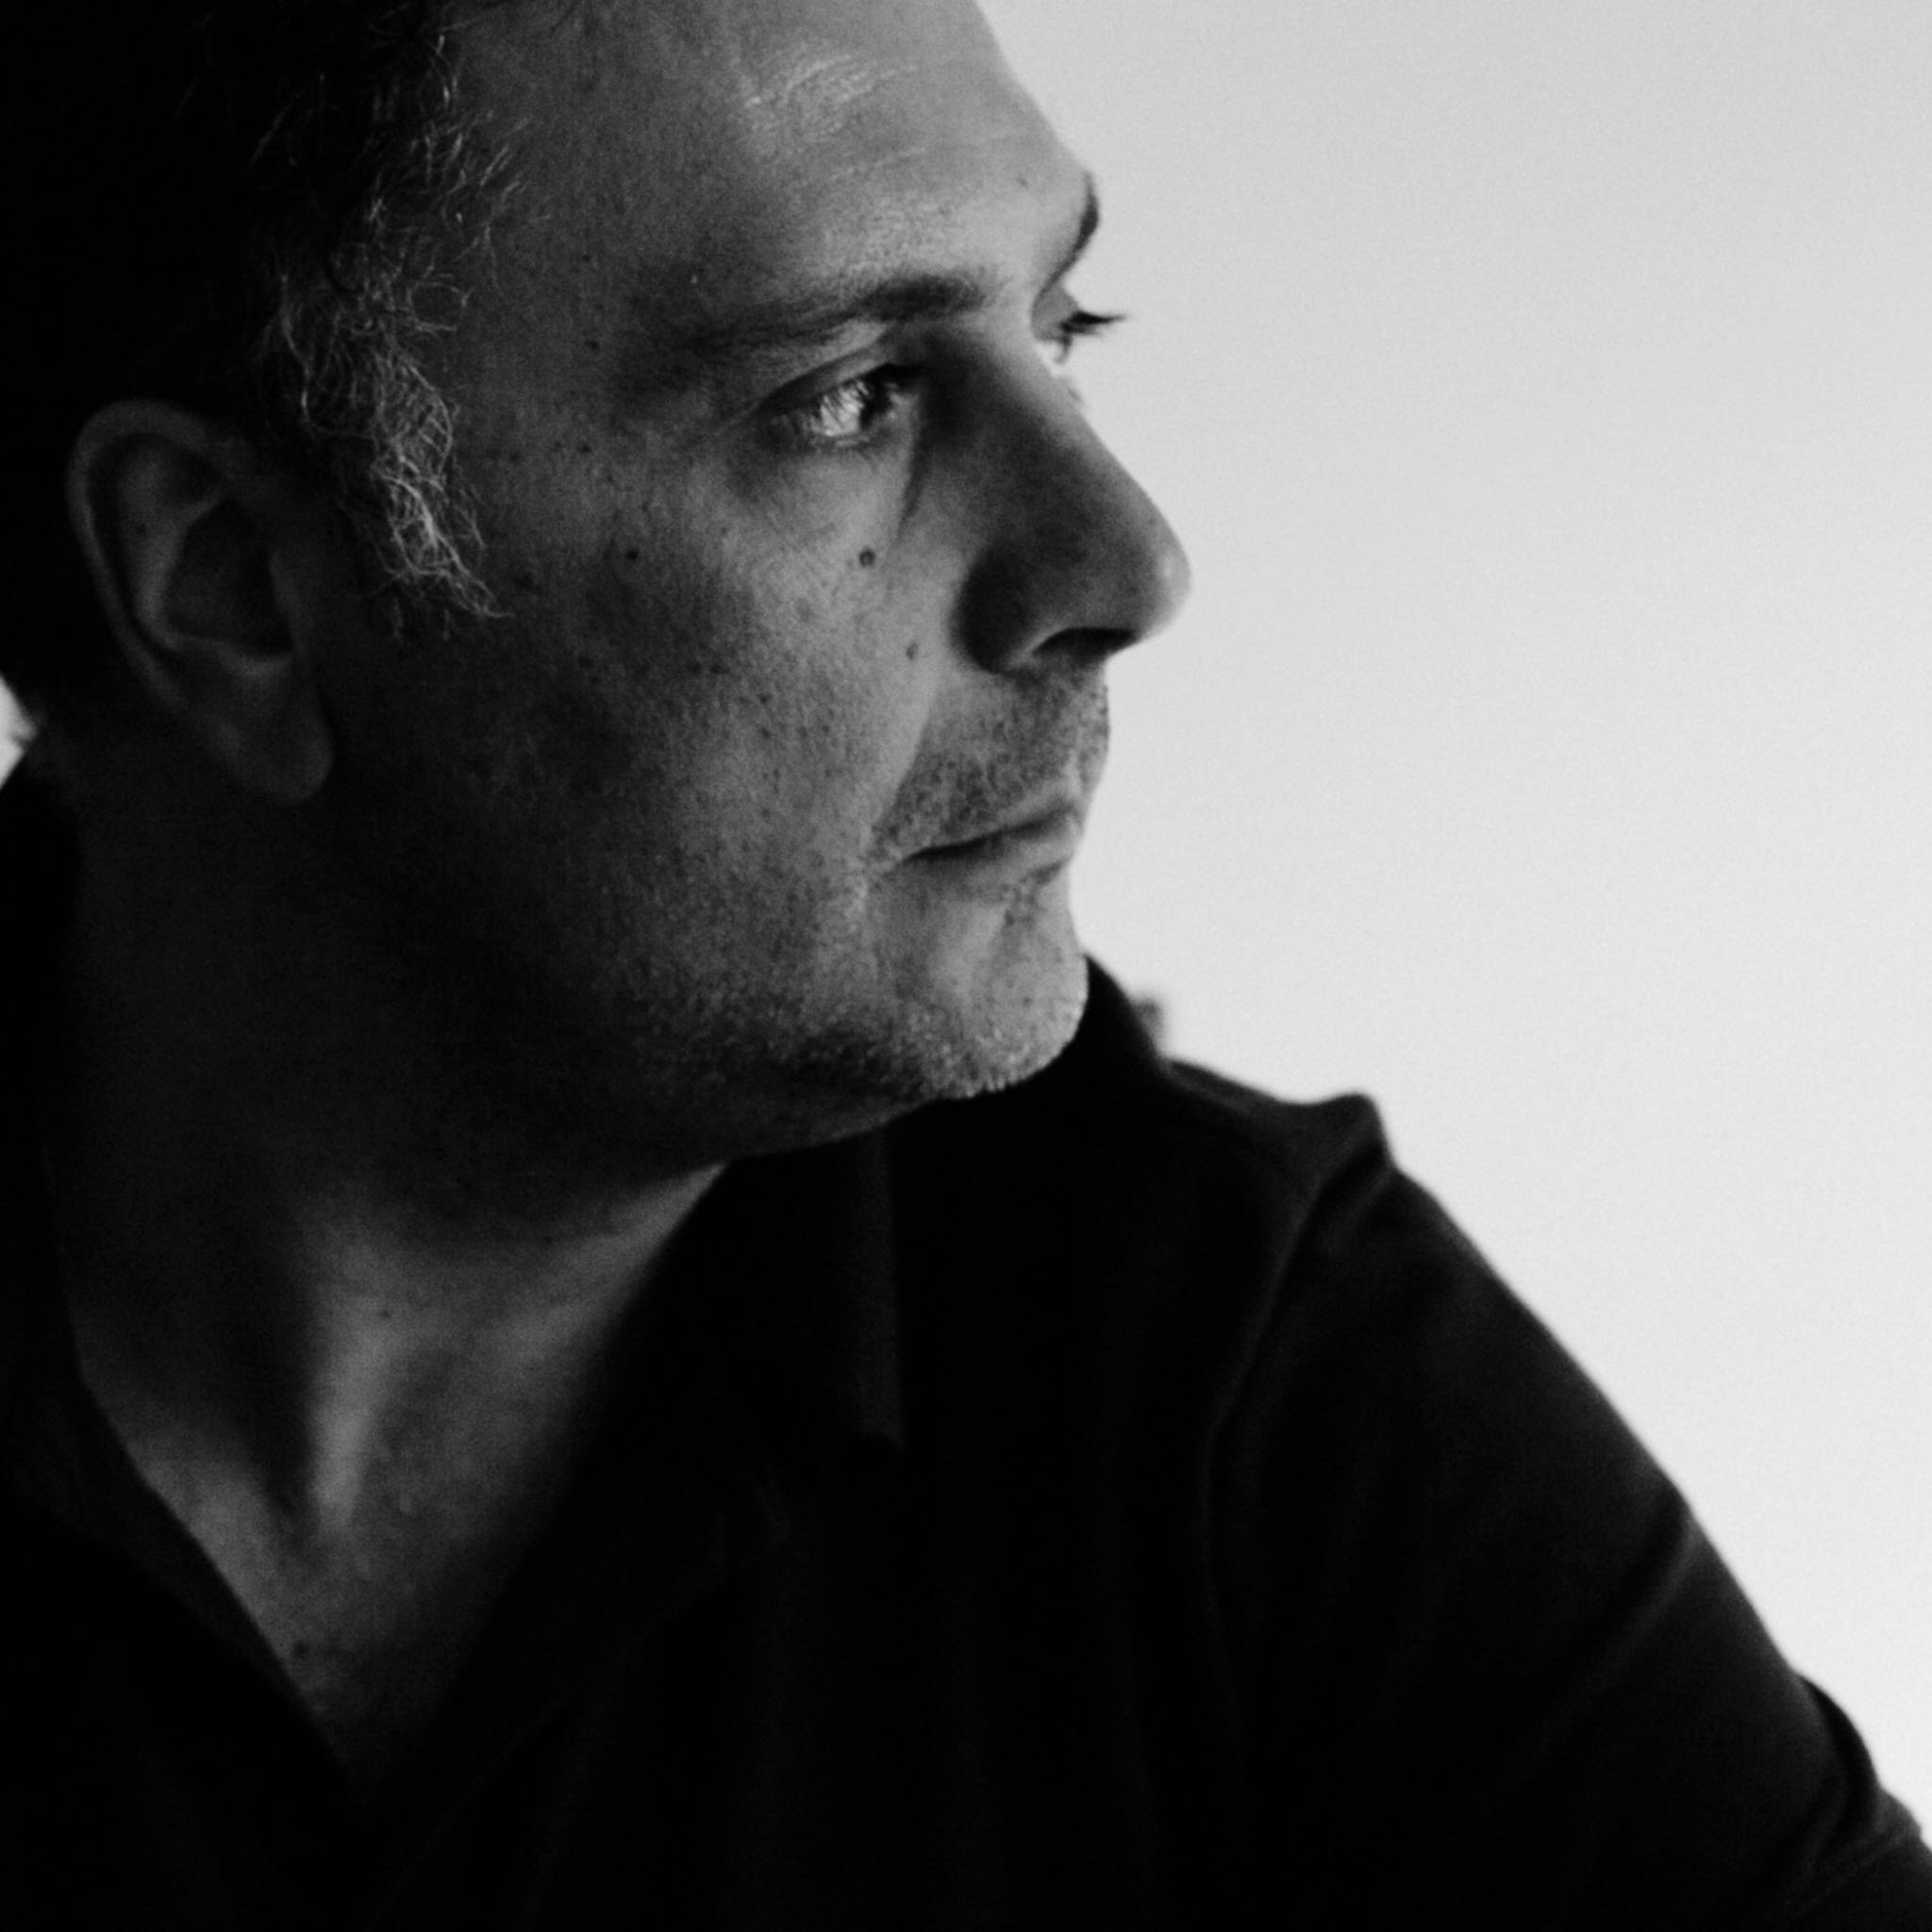 Salvo Toscano - Salvo photographs as a way to document and appreciate what he sees and experiences